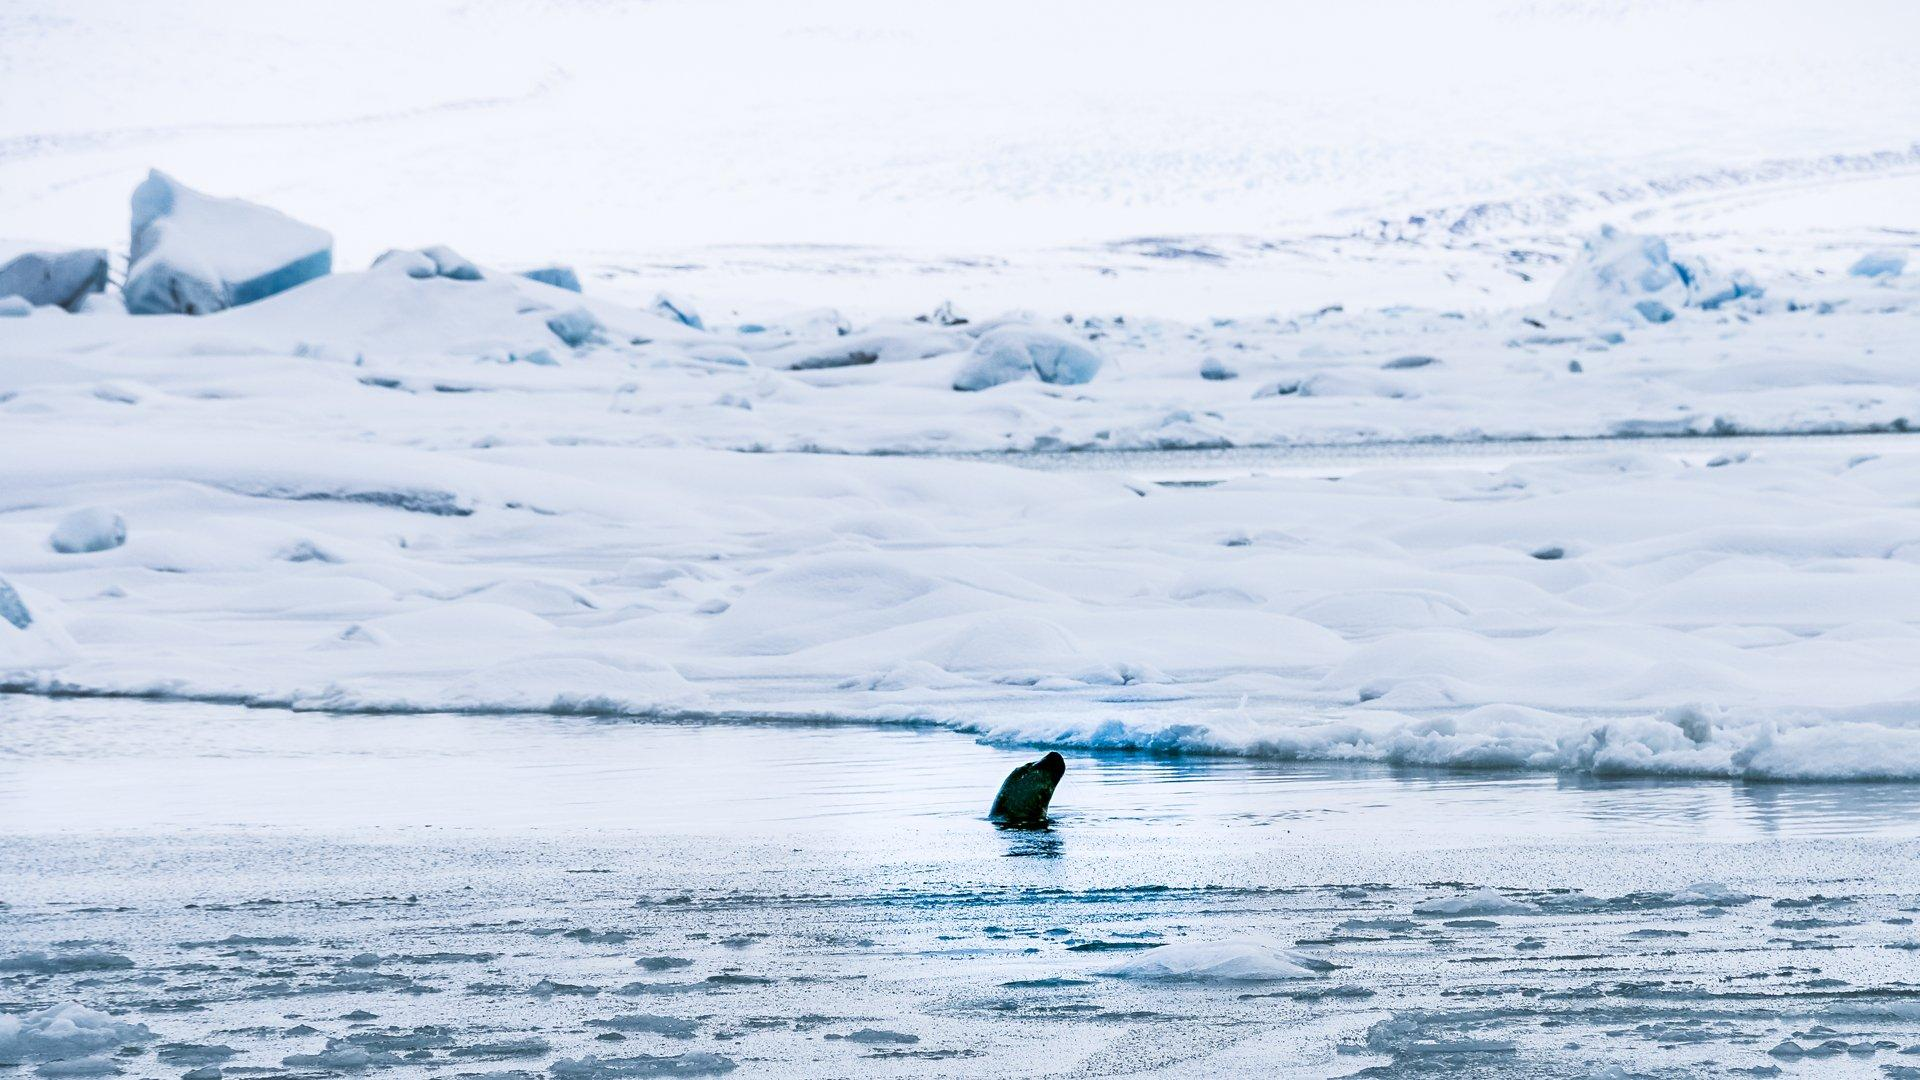 Seal popping it's head above the water on a freezing lake